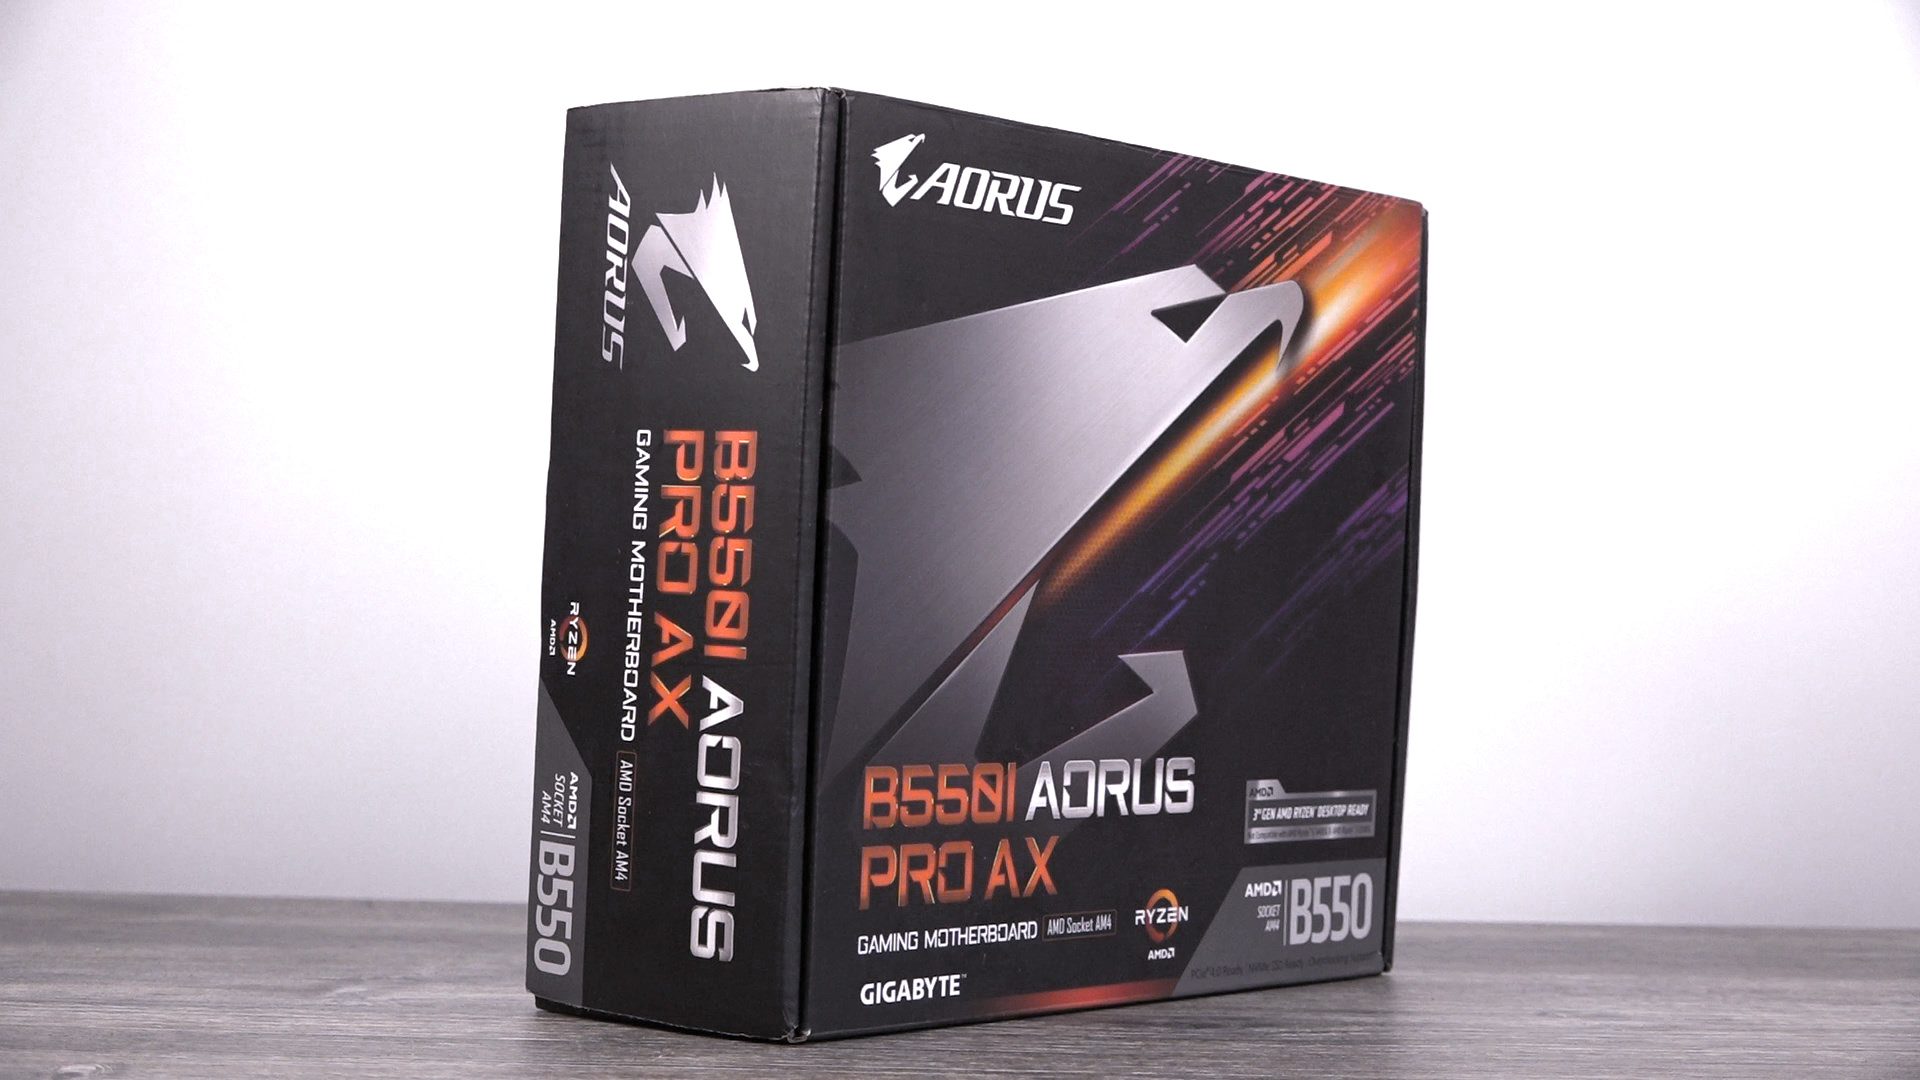 AMD B550 - to buy or not?  We analyze the pros and cons using the example of the Gigabyte B550i